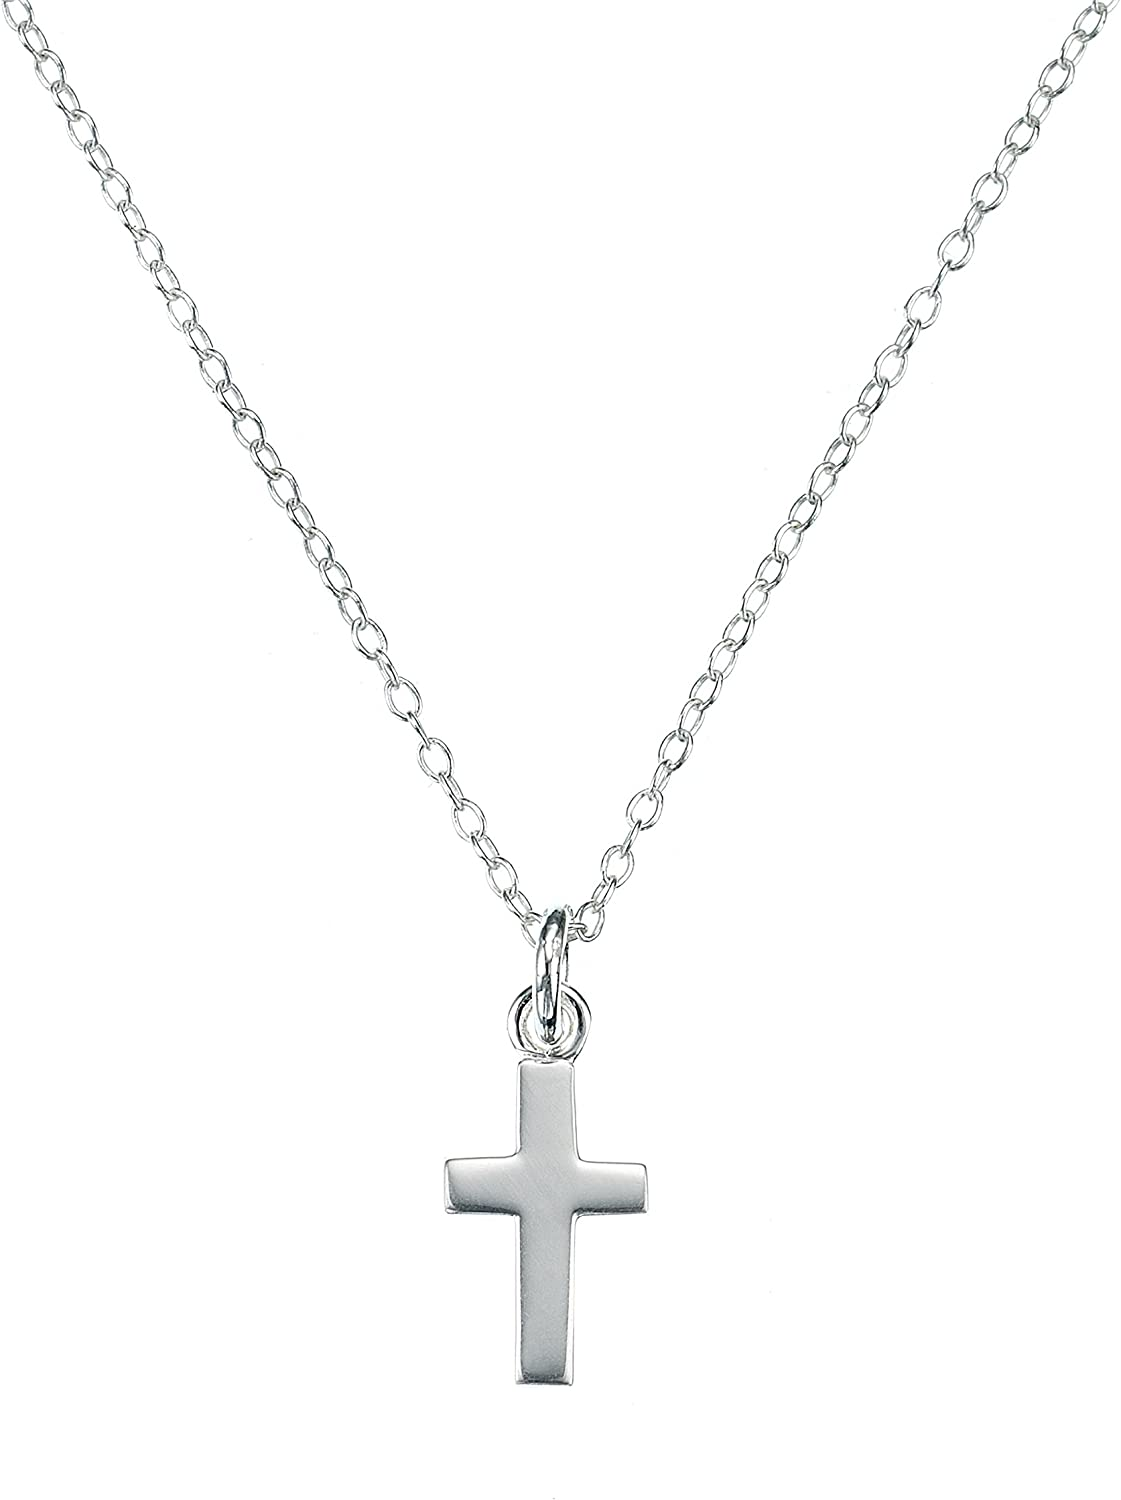 Molly B London Sterling Silver Cross Girl's Necklace | Baptism Jewelry | First Holy Communion Gift | Girl's Religious Jewelry | Quinceañera Gift | Baby & Girls Jewelry